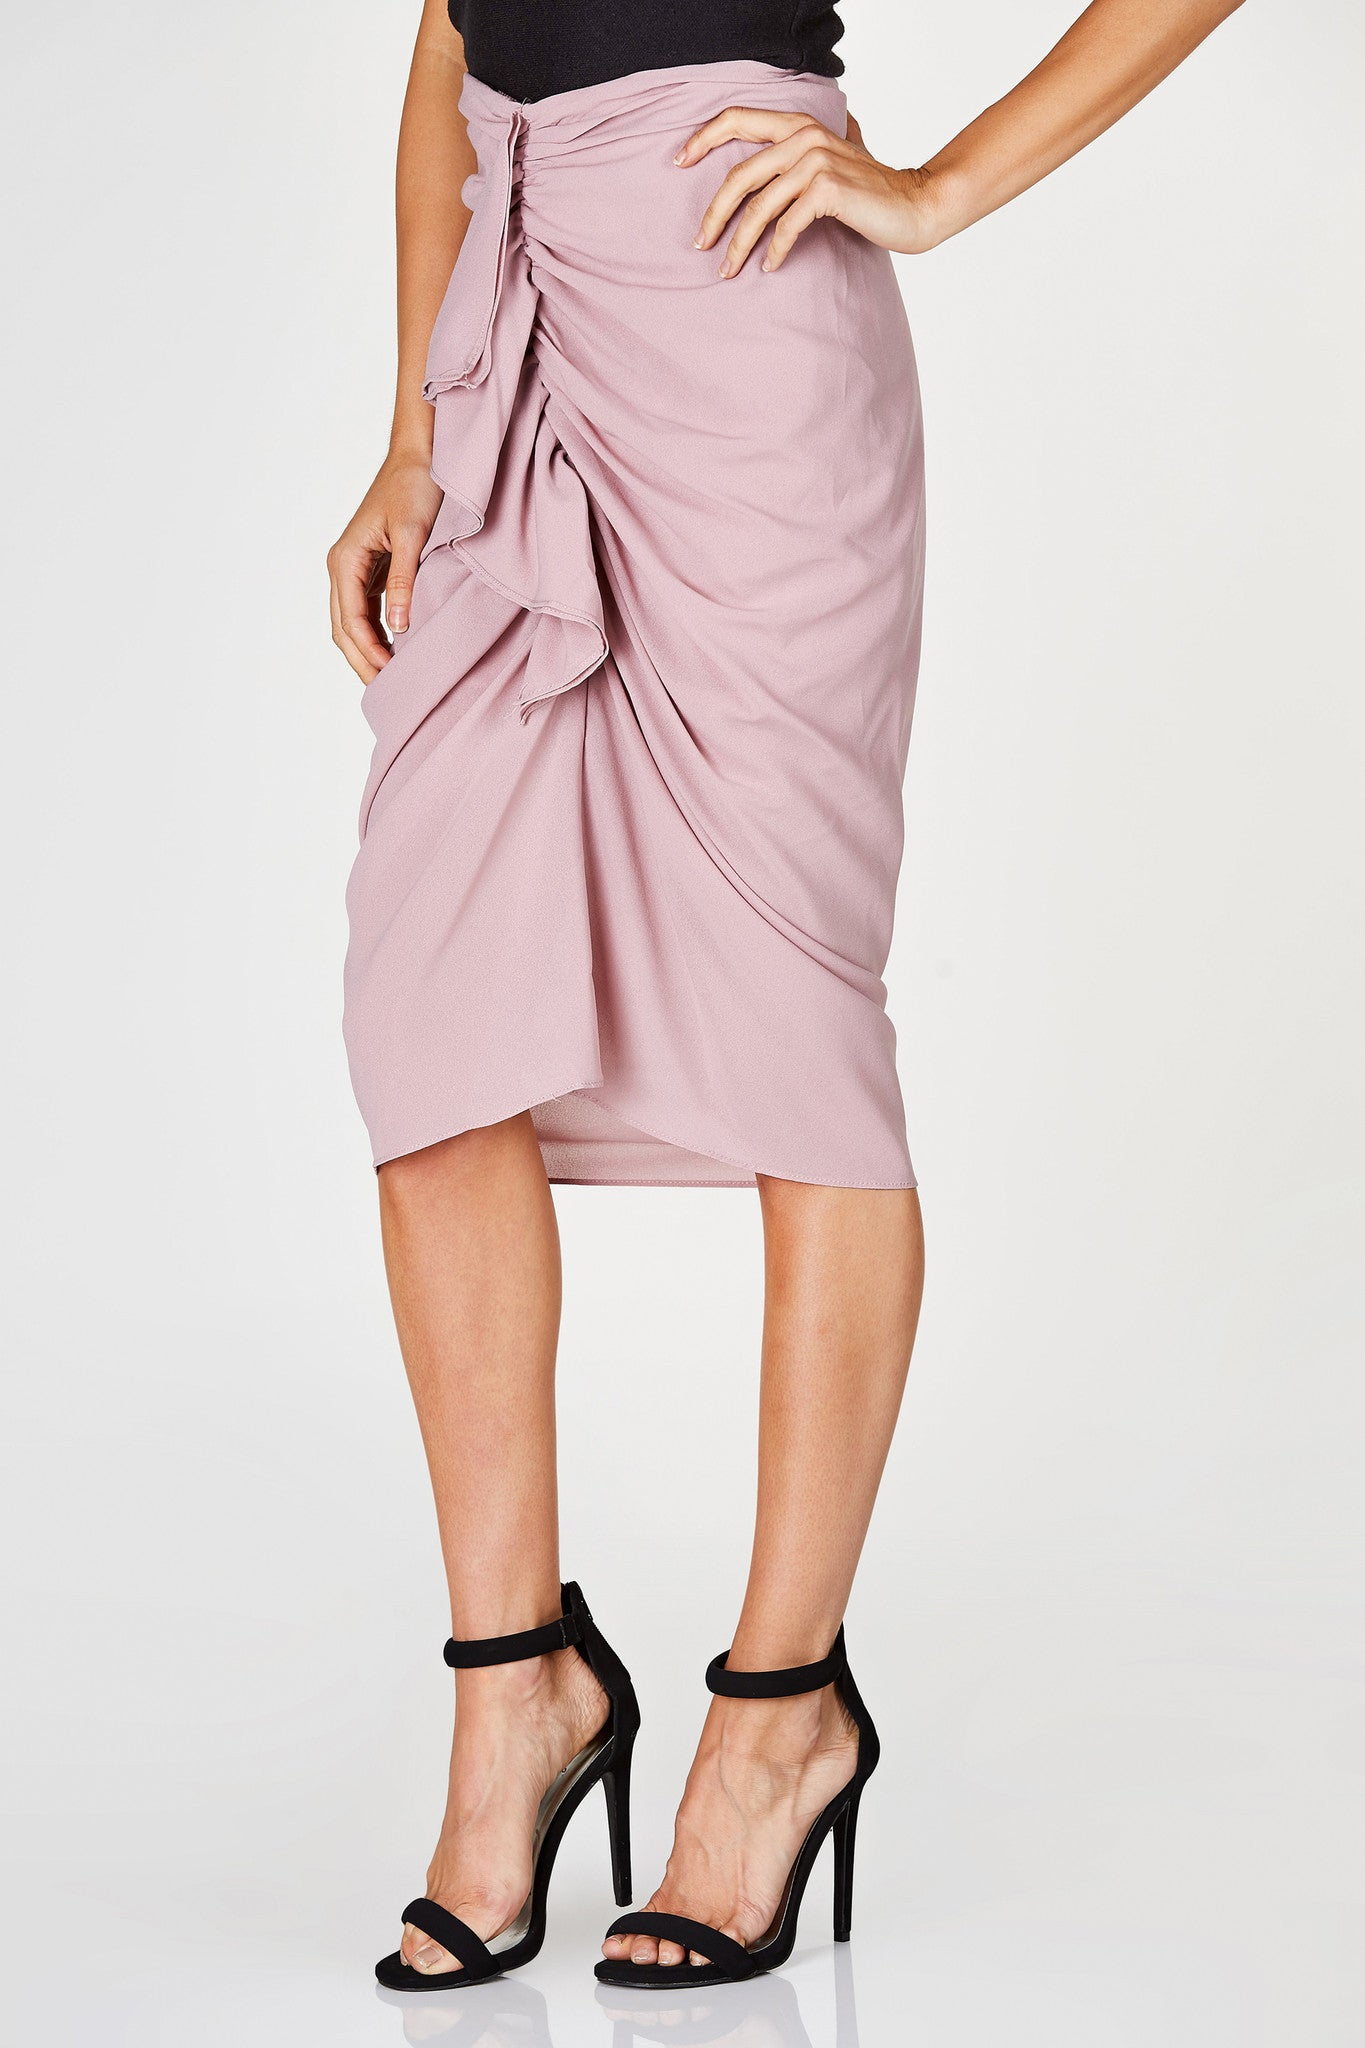 A gorgeous chiffon midi skirt with ruching in front with a ruffled finish. Tapered fit to flatter your curves. Single zip closure in the back with elasticized waistband for comfortable fit. Perfect for special night time events!